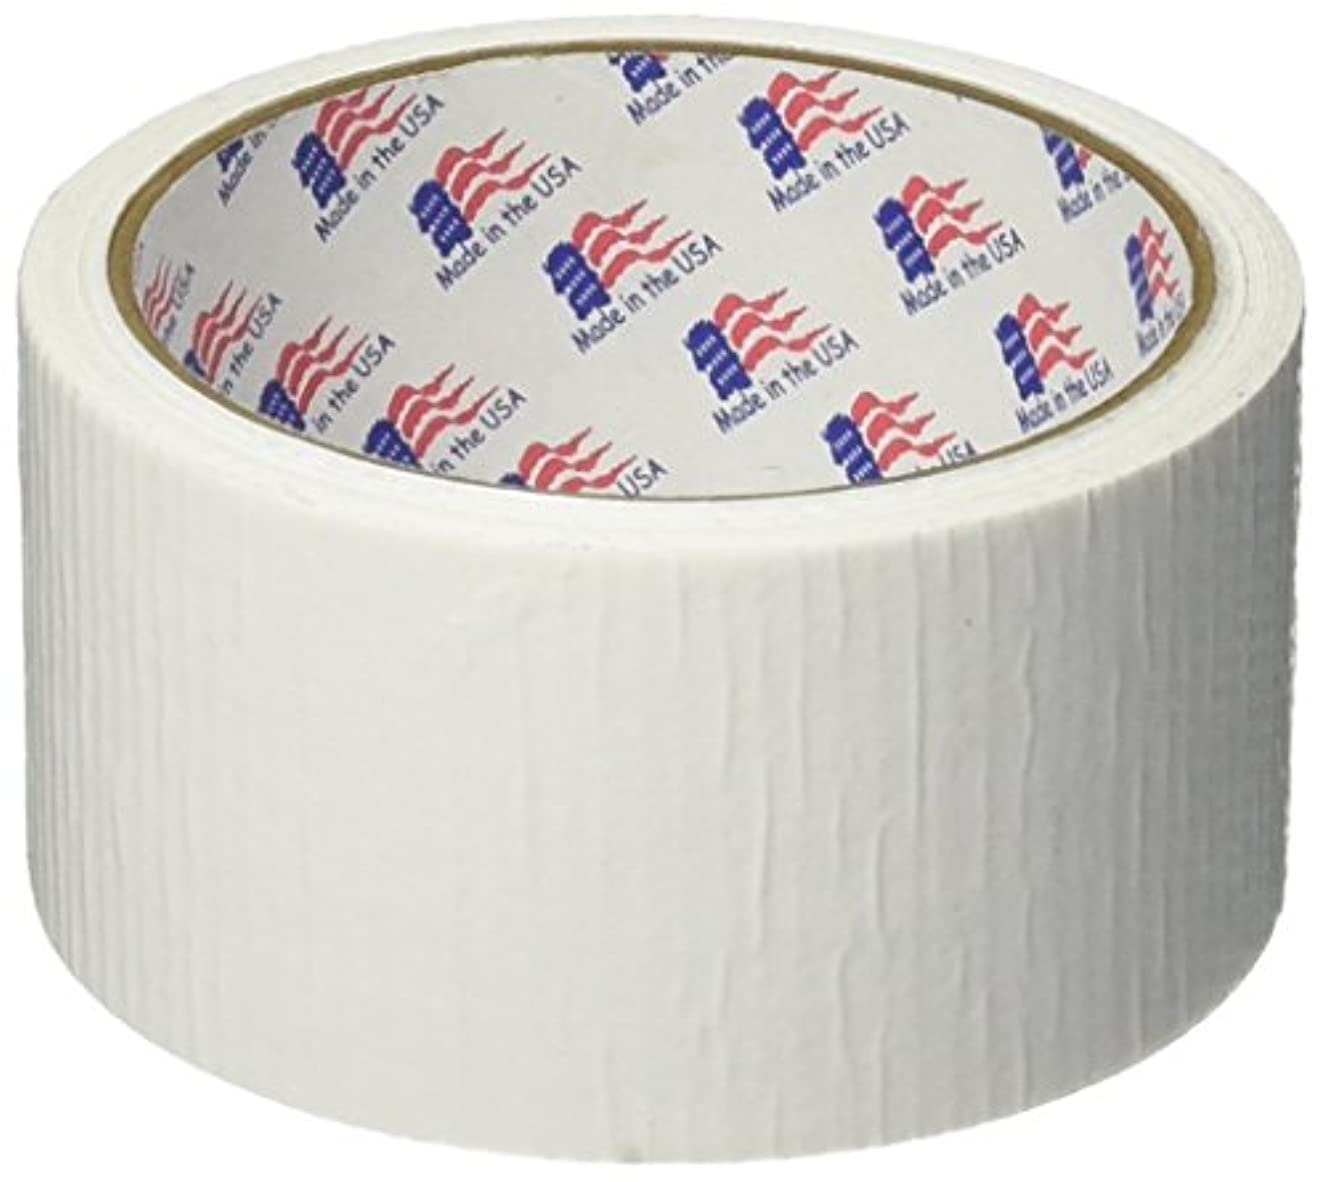 Signature Crafts Fashion Duct Tape Solid White DT215WH 15 Yards 1.88 Inches Wide, 15 yd 1.88